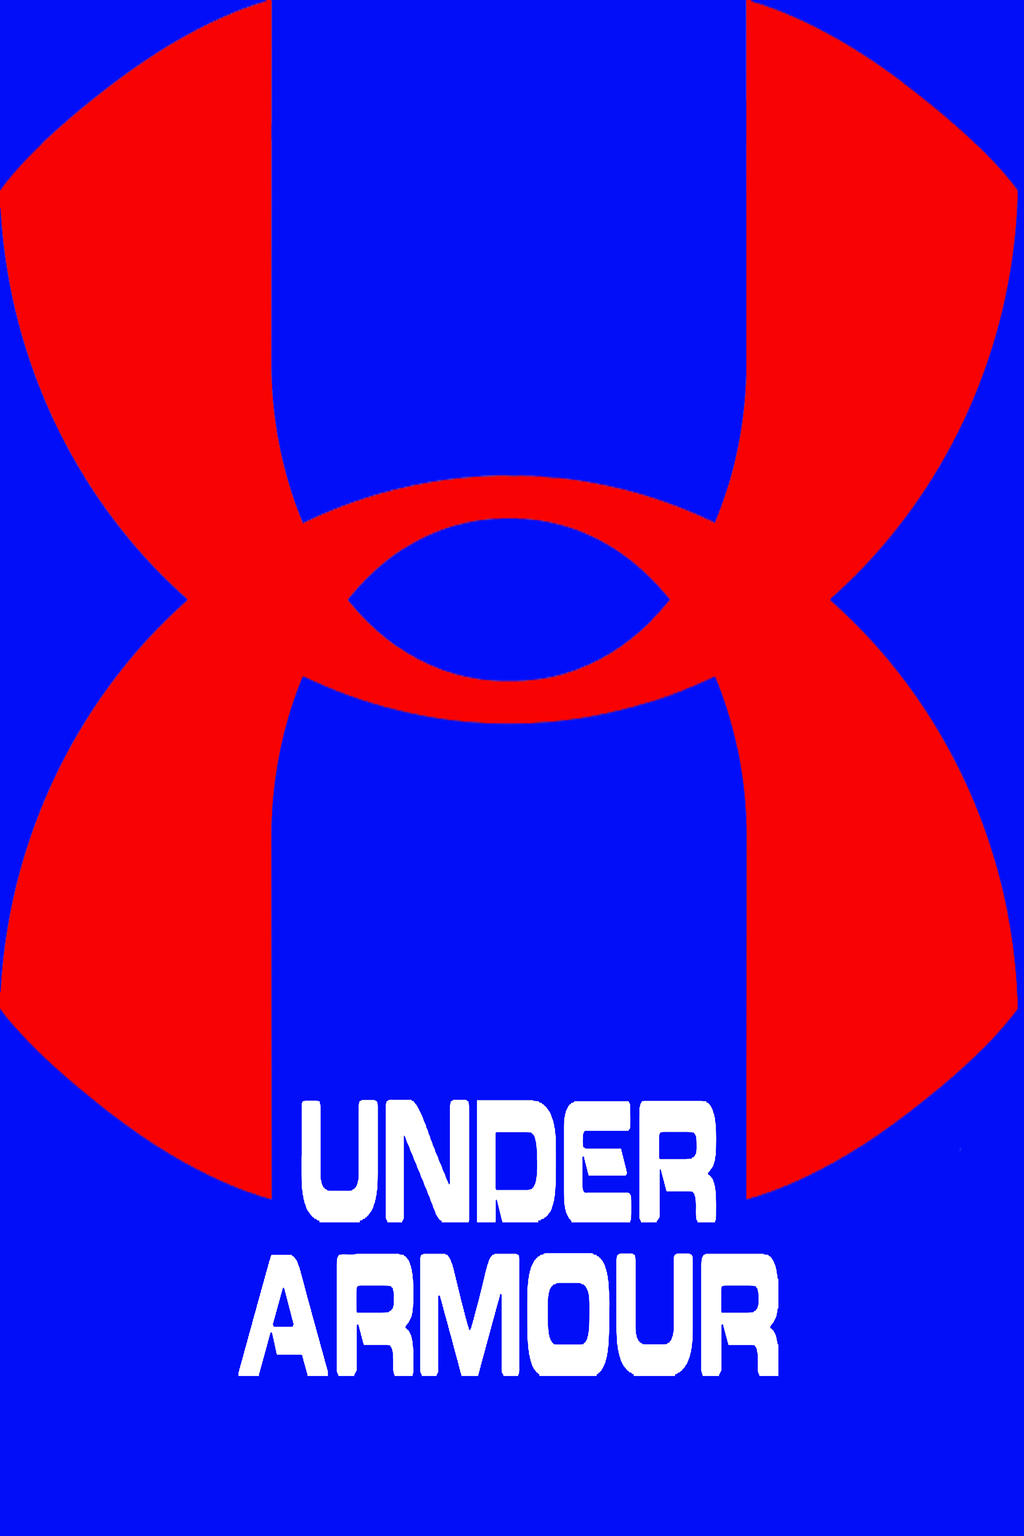 under armour logo red